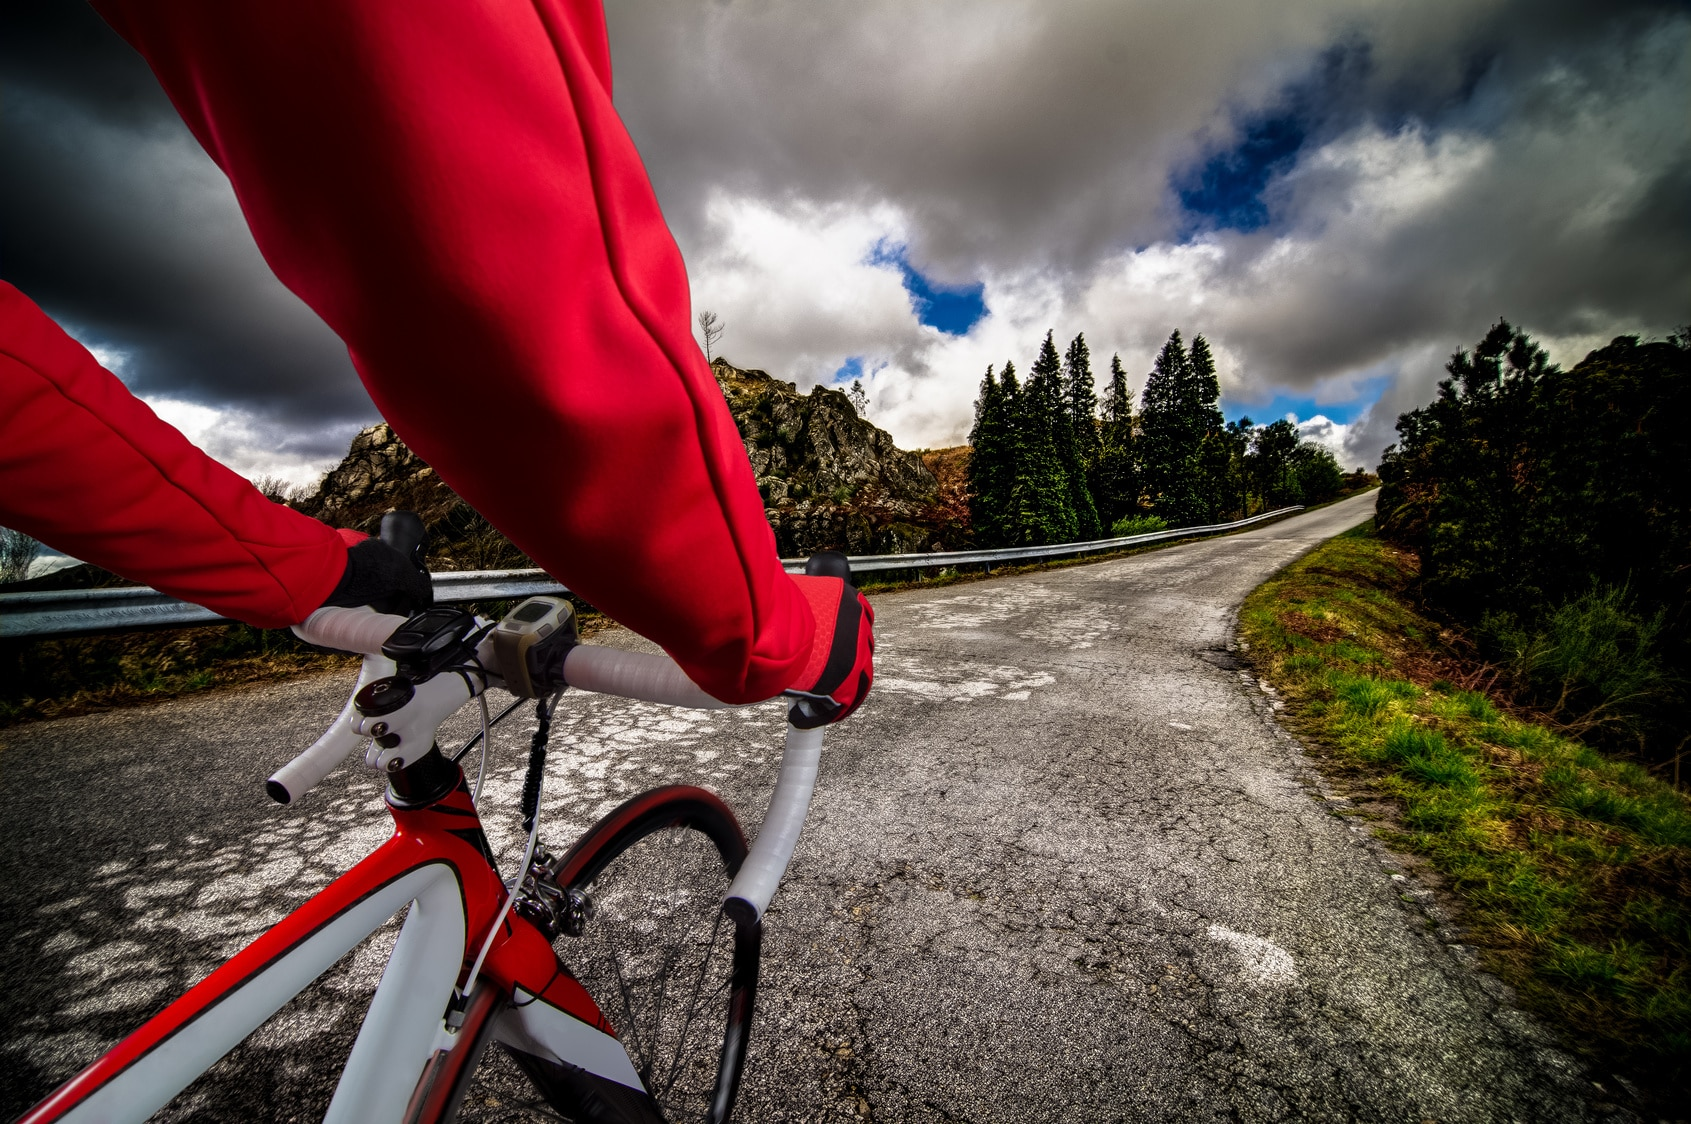 Check My Post For Some Of The Best Biking Workouts Runners